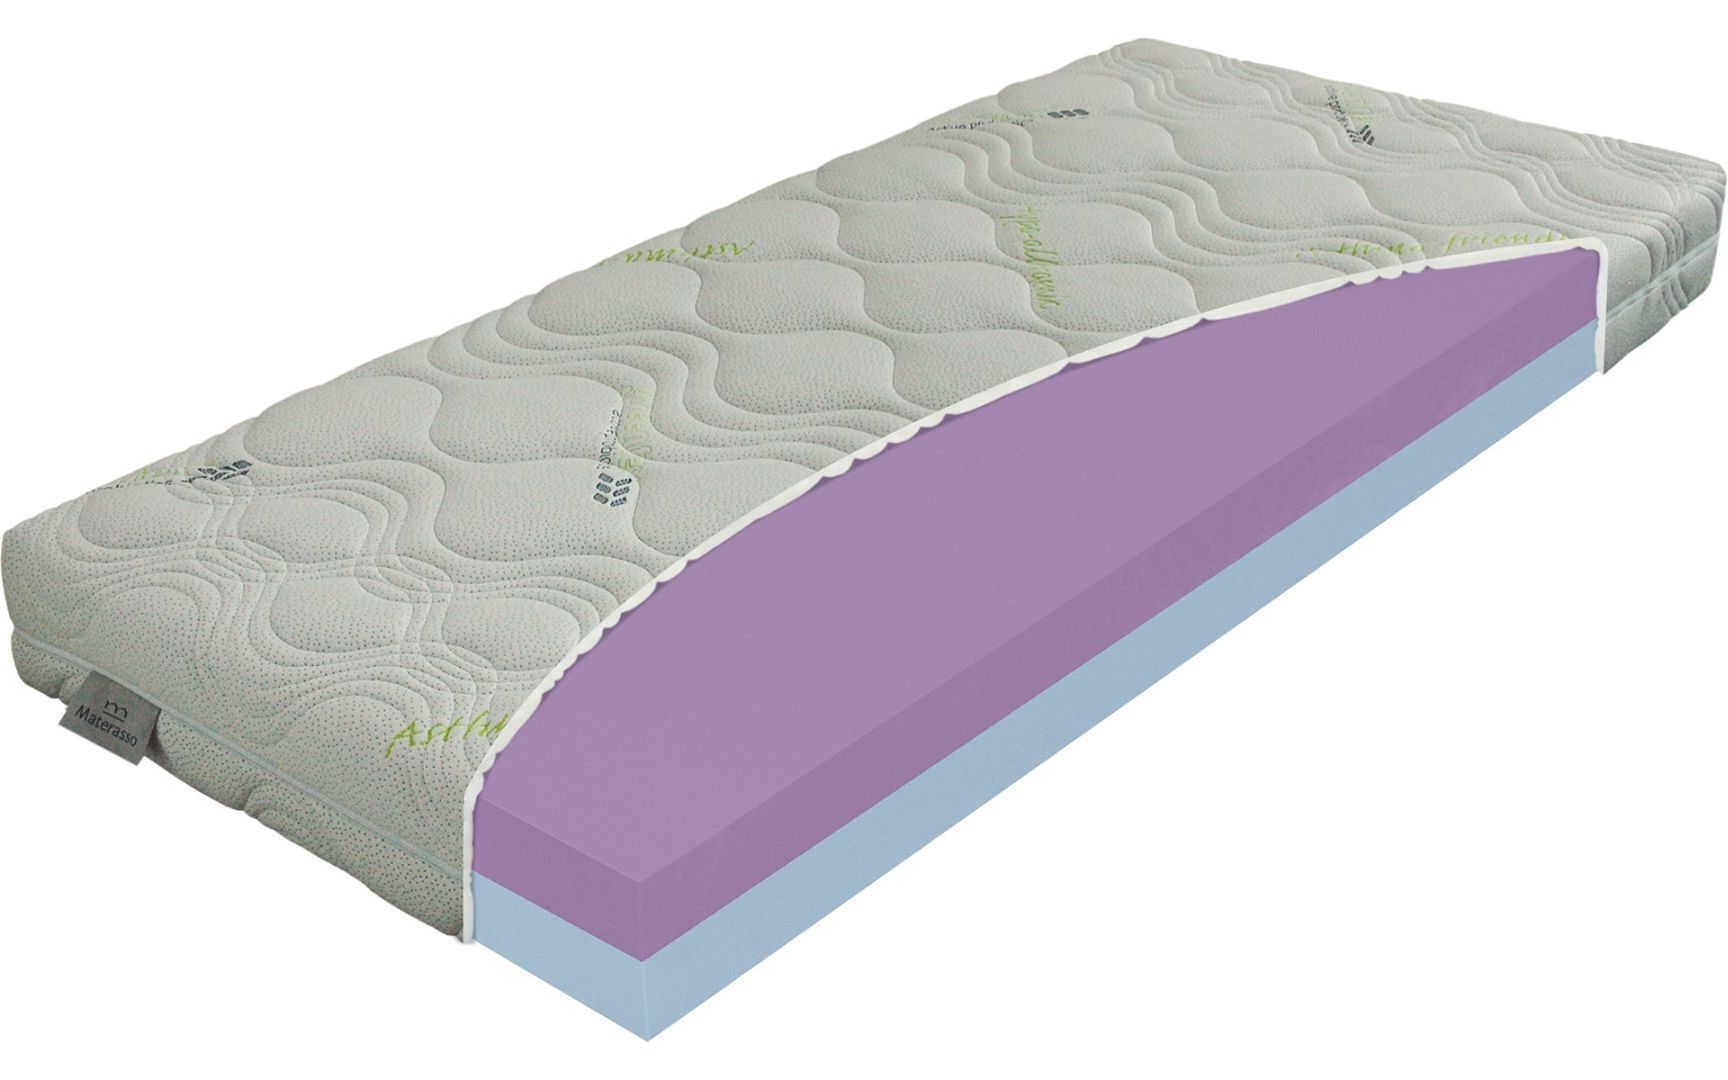 Materasso Body Shape Elite.Mattress Zdenek 20 Materasso